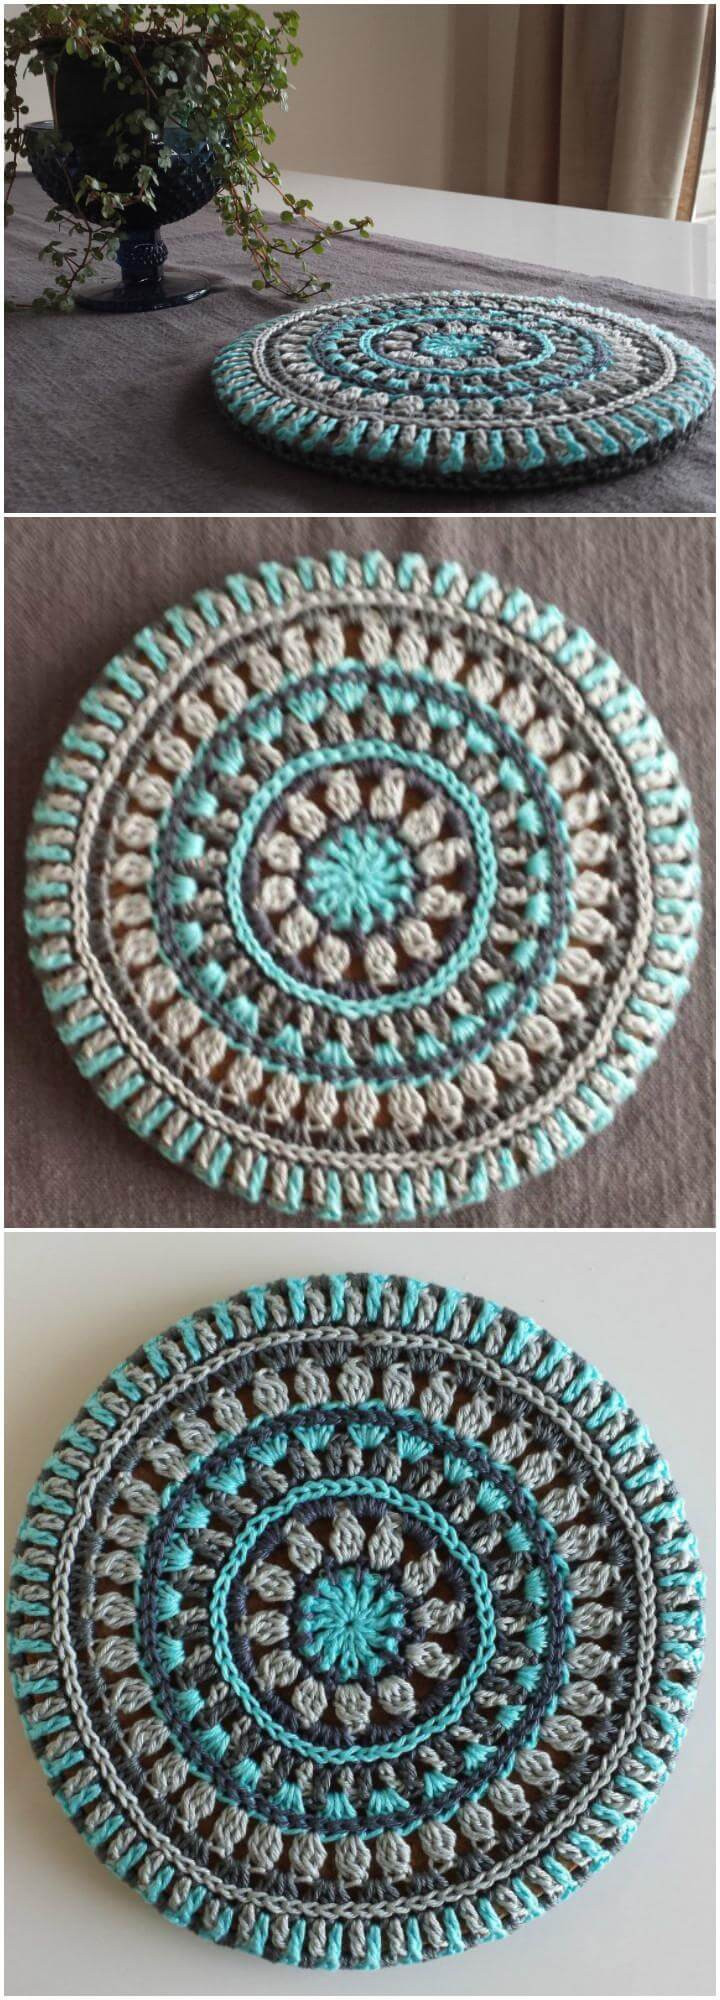 60 Free Crochet Mandala Patterns Page 3 of 12 DIY